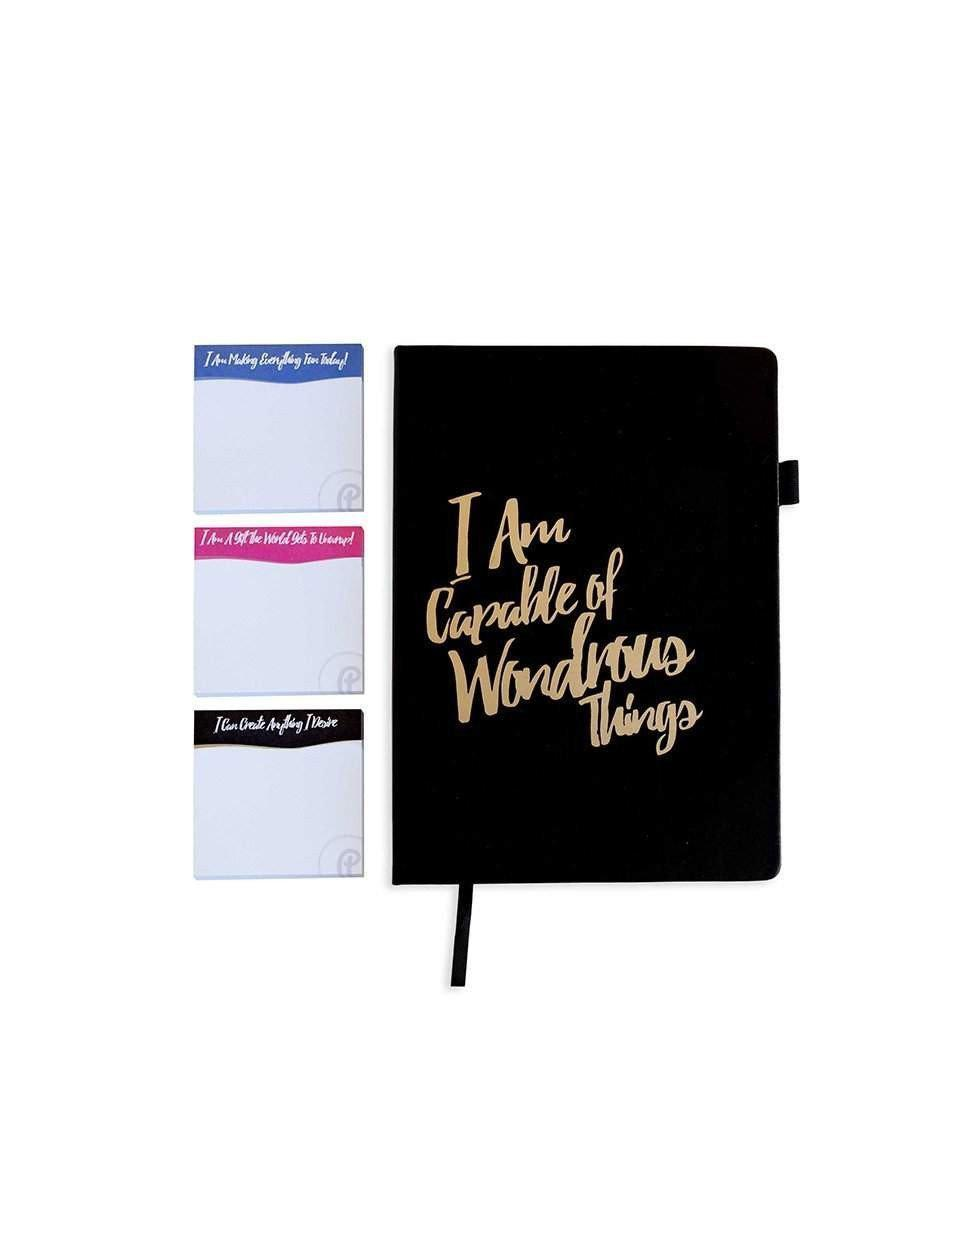 The Journal-Journal-PleaseNotes-PleaseNotes Guided Journal filled with affirmations and inspirational quotes from today's thought leaders. - I Am capable Journal - I am capable of wondrous things journal